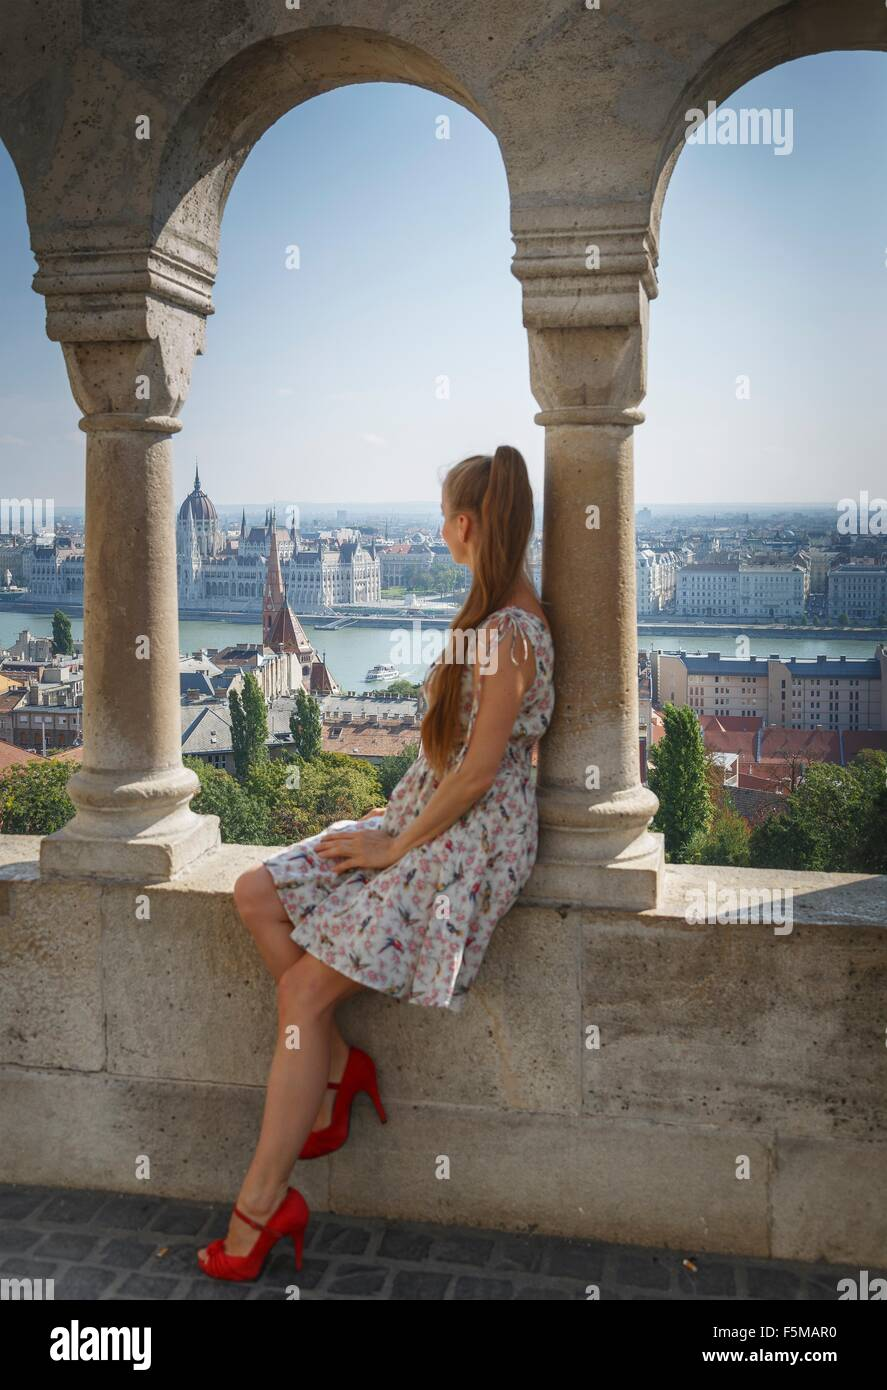 Mid adult woman looking at view of Buda from the Fisherman's Bastion, Budapest, Hungary - Stock Image